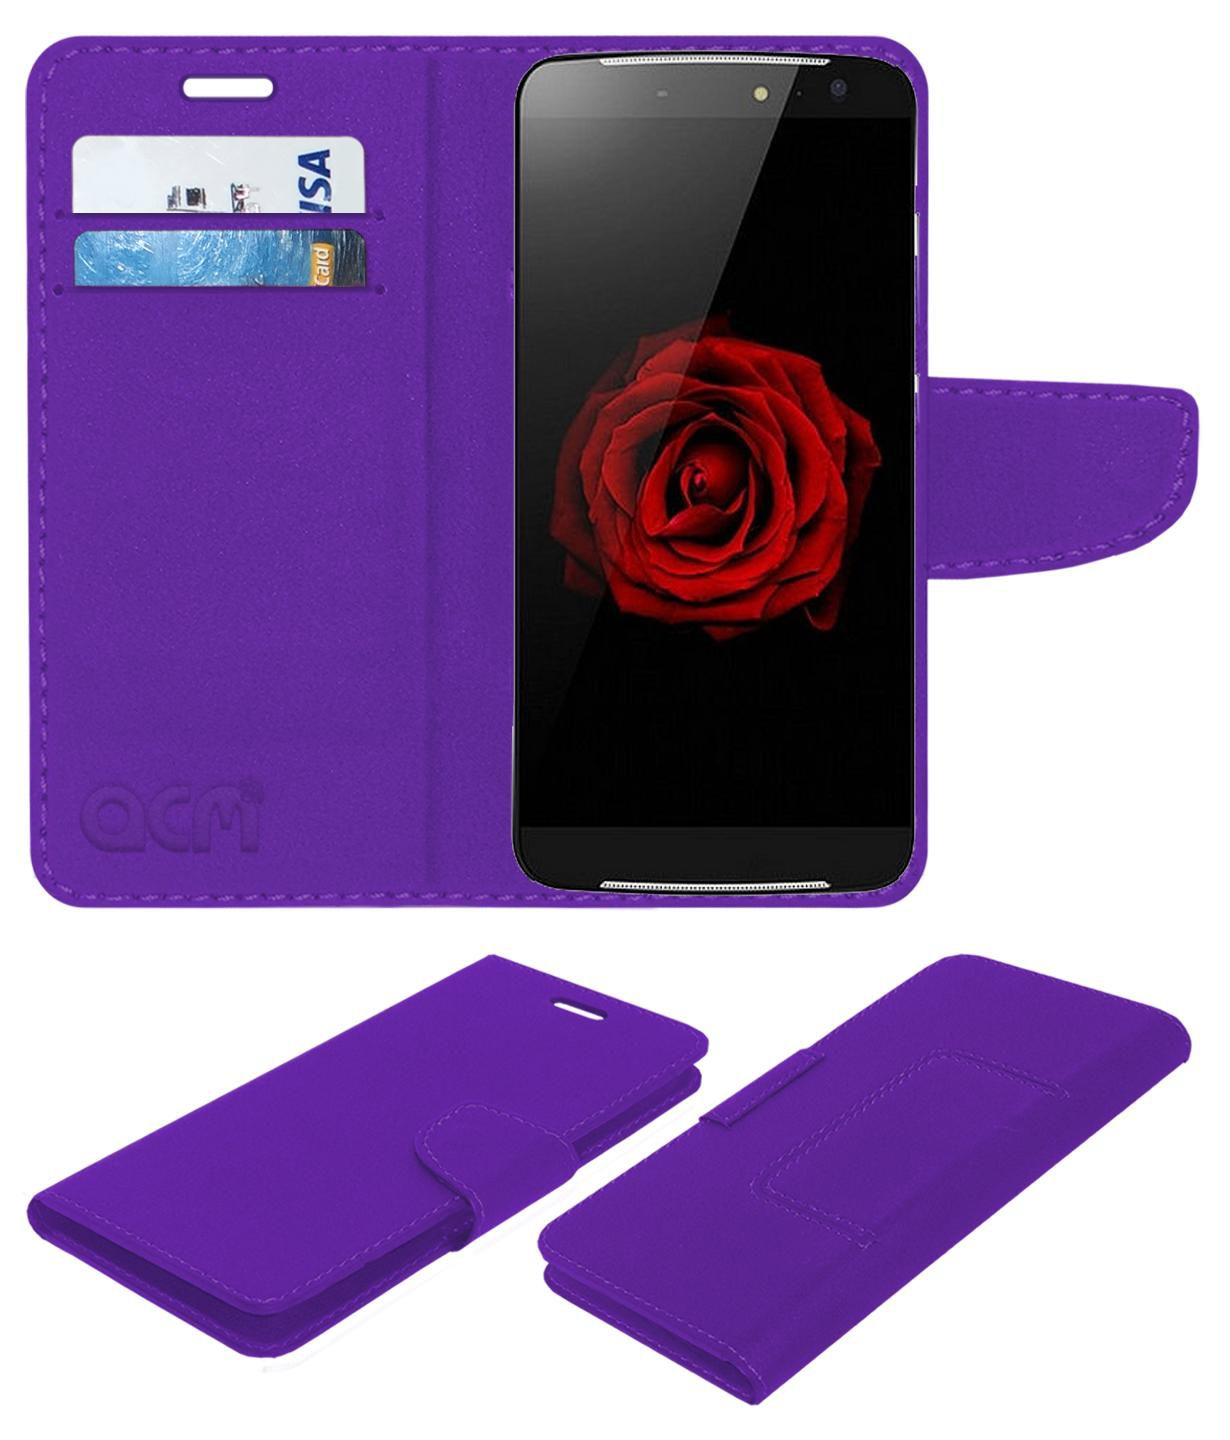 ZOPO SPEED 8 Flip Cover by ACM - Purple